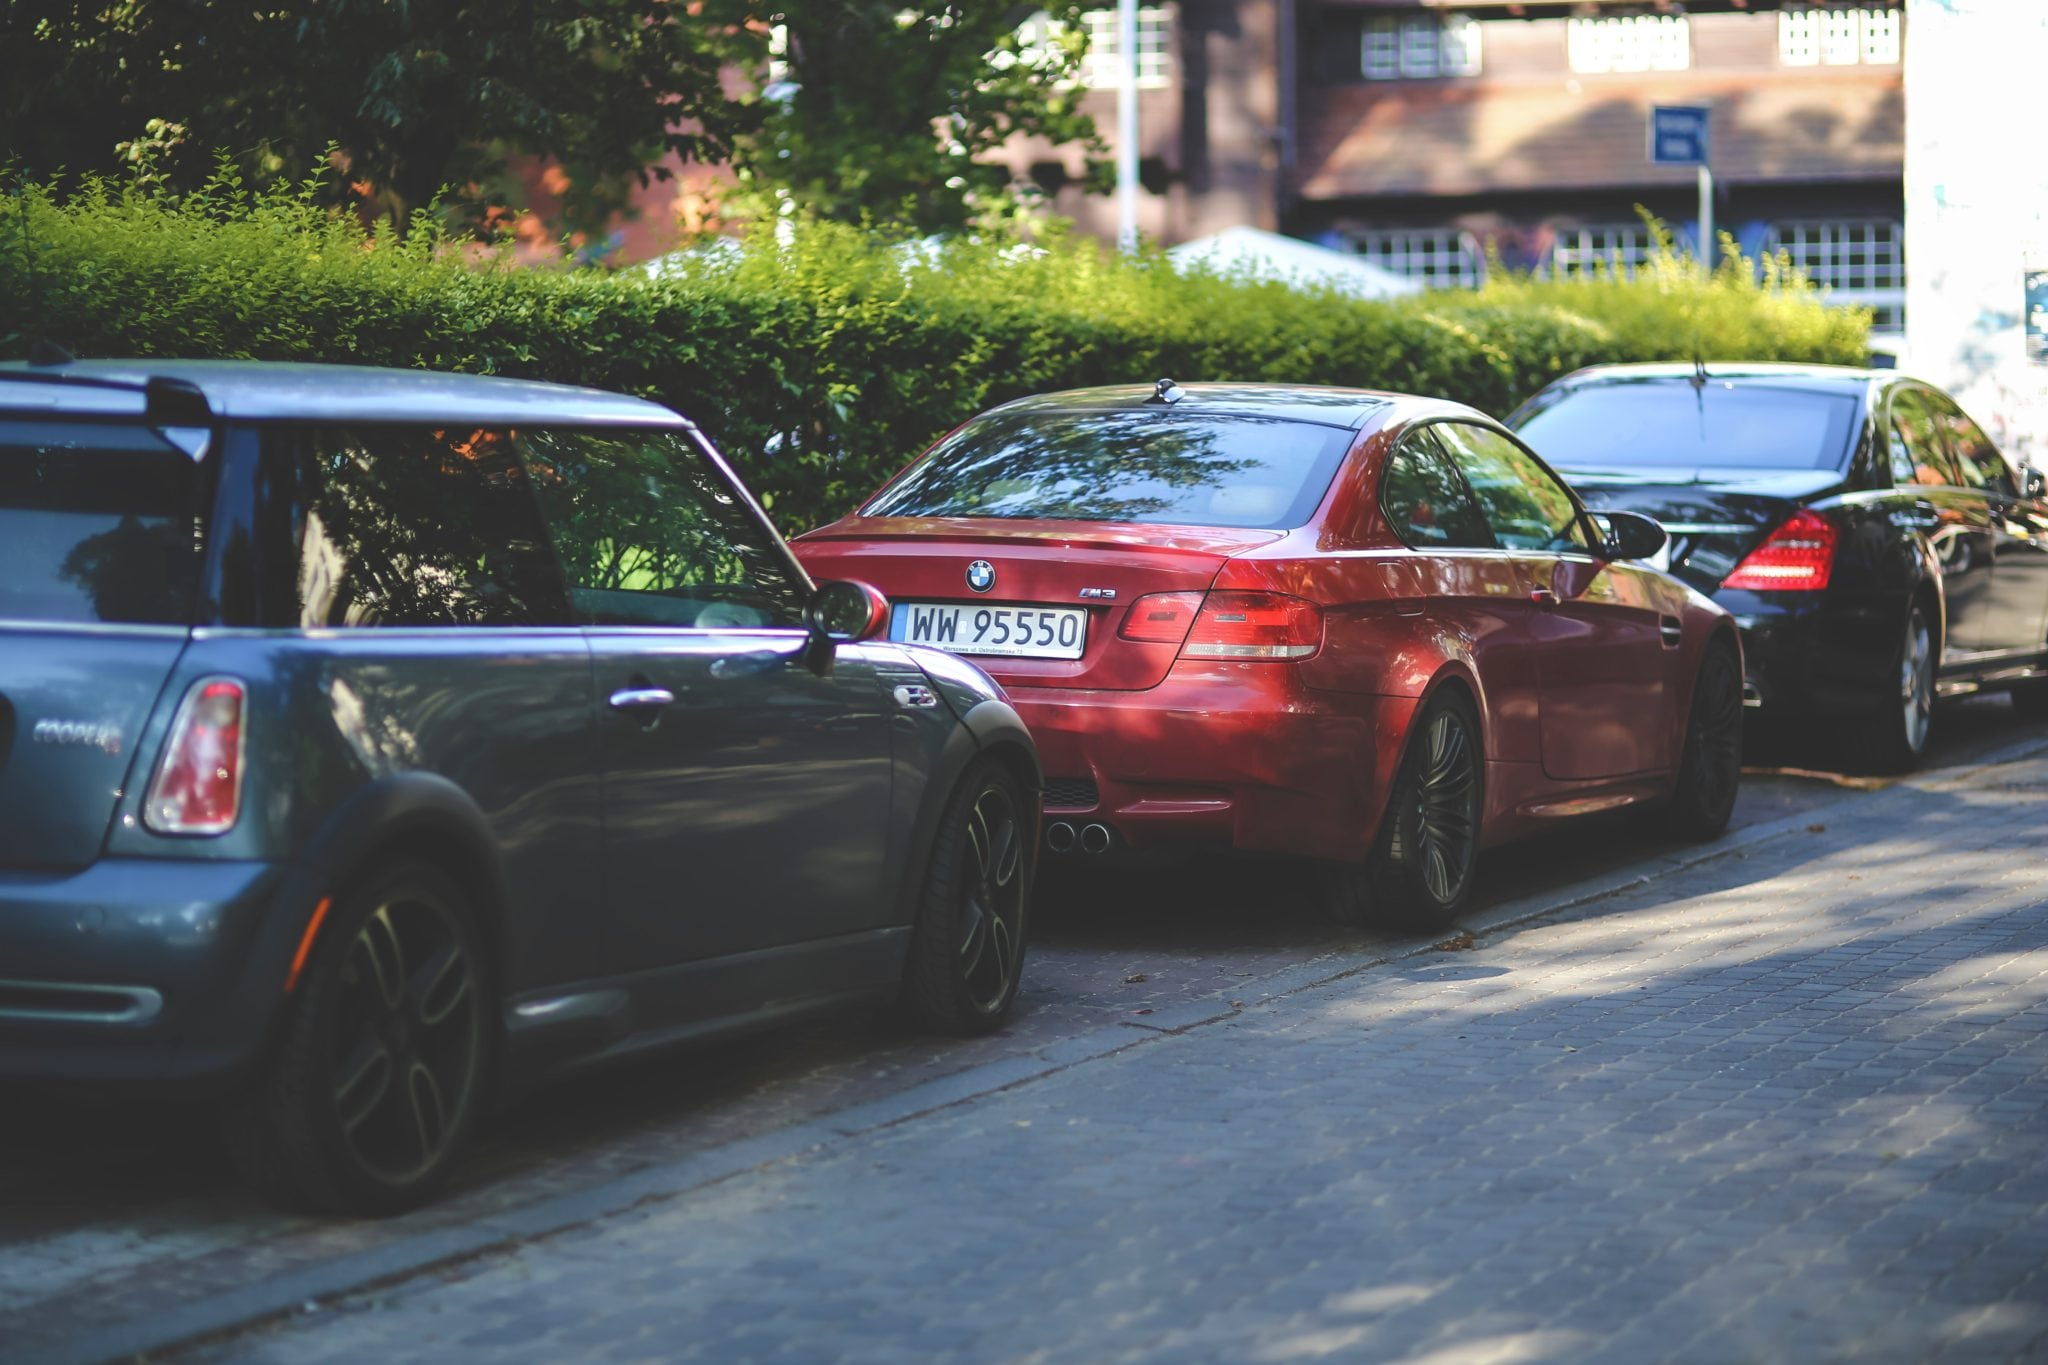 Automotive Repair and Maintenance in Cleveland